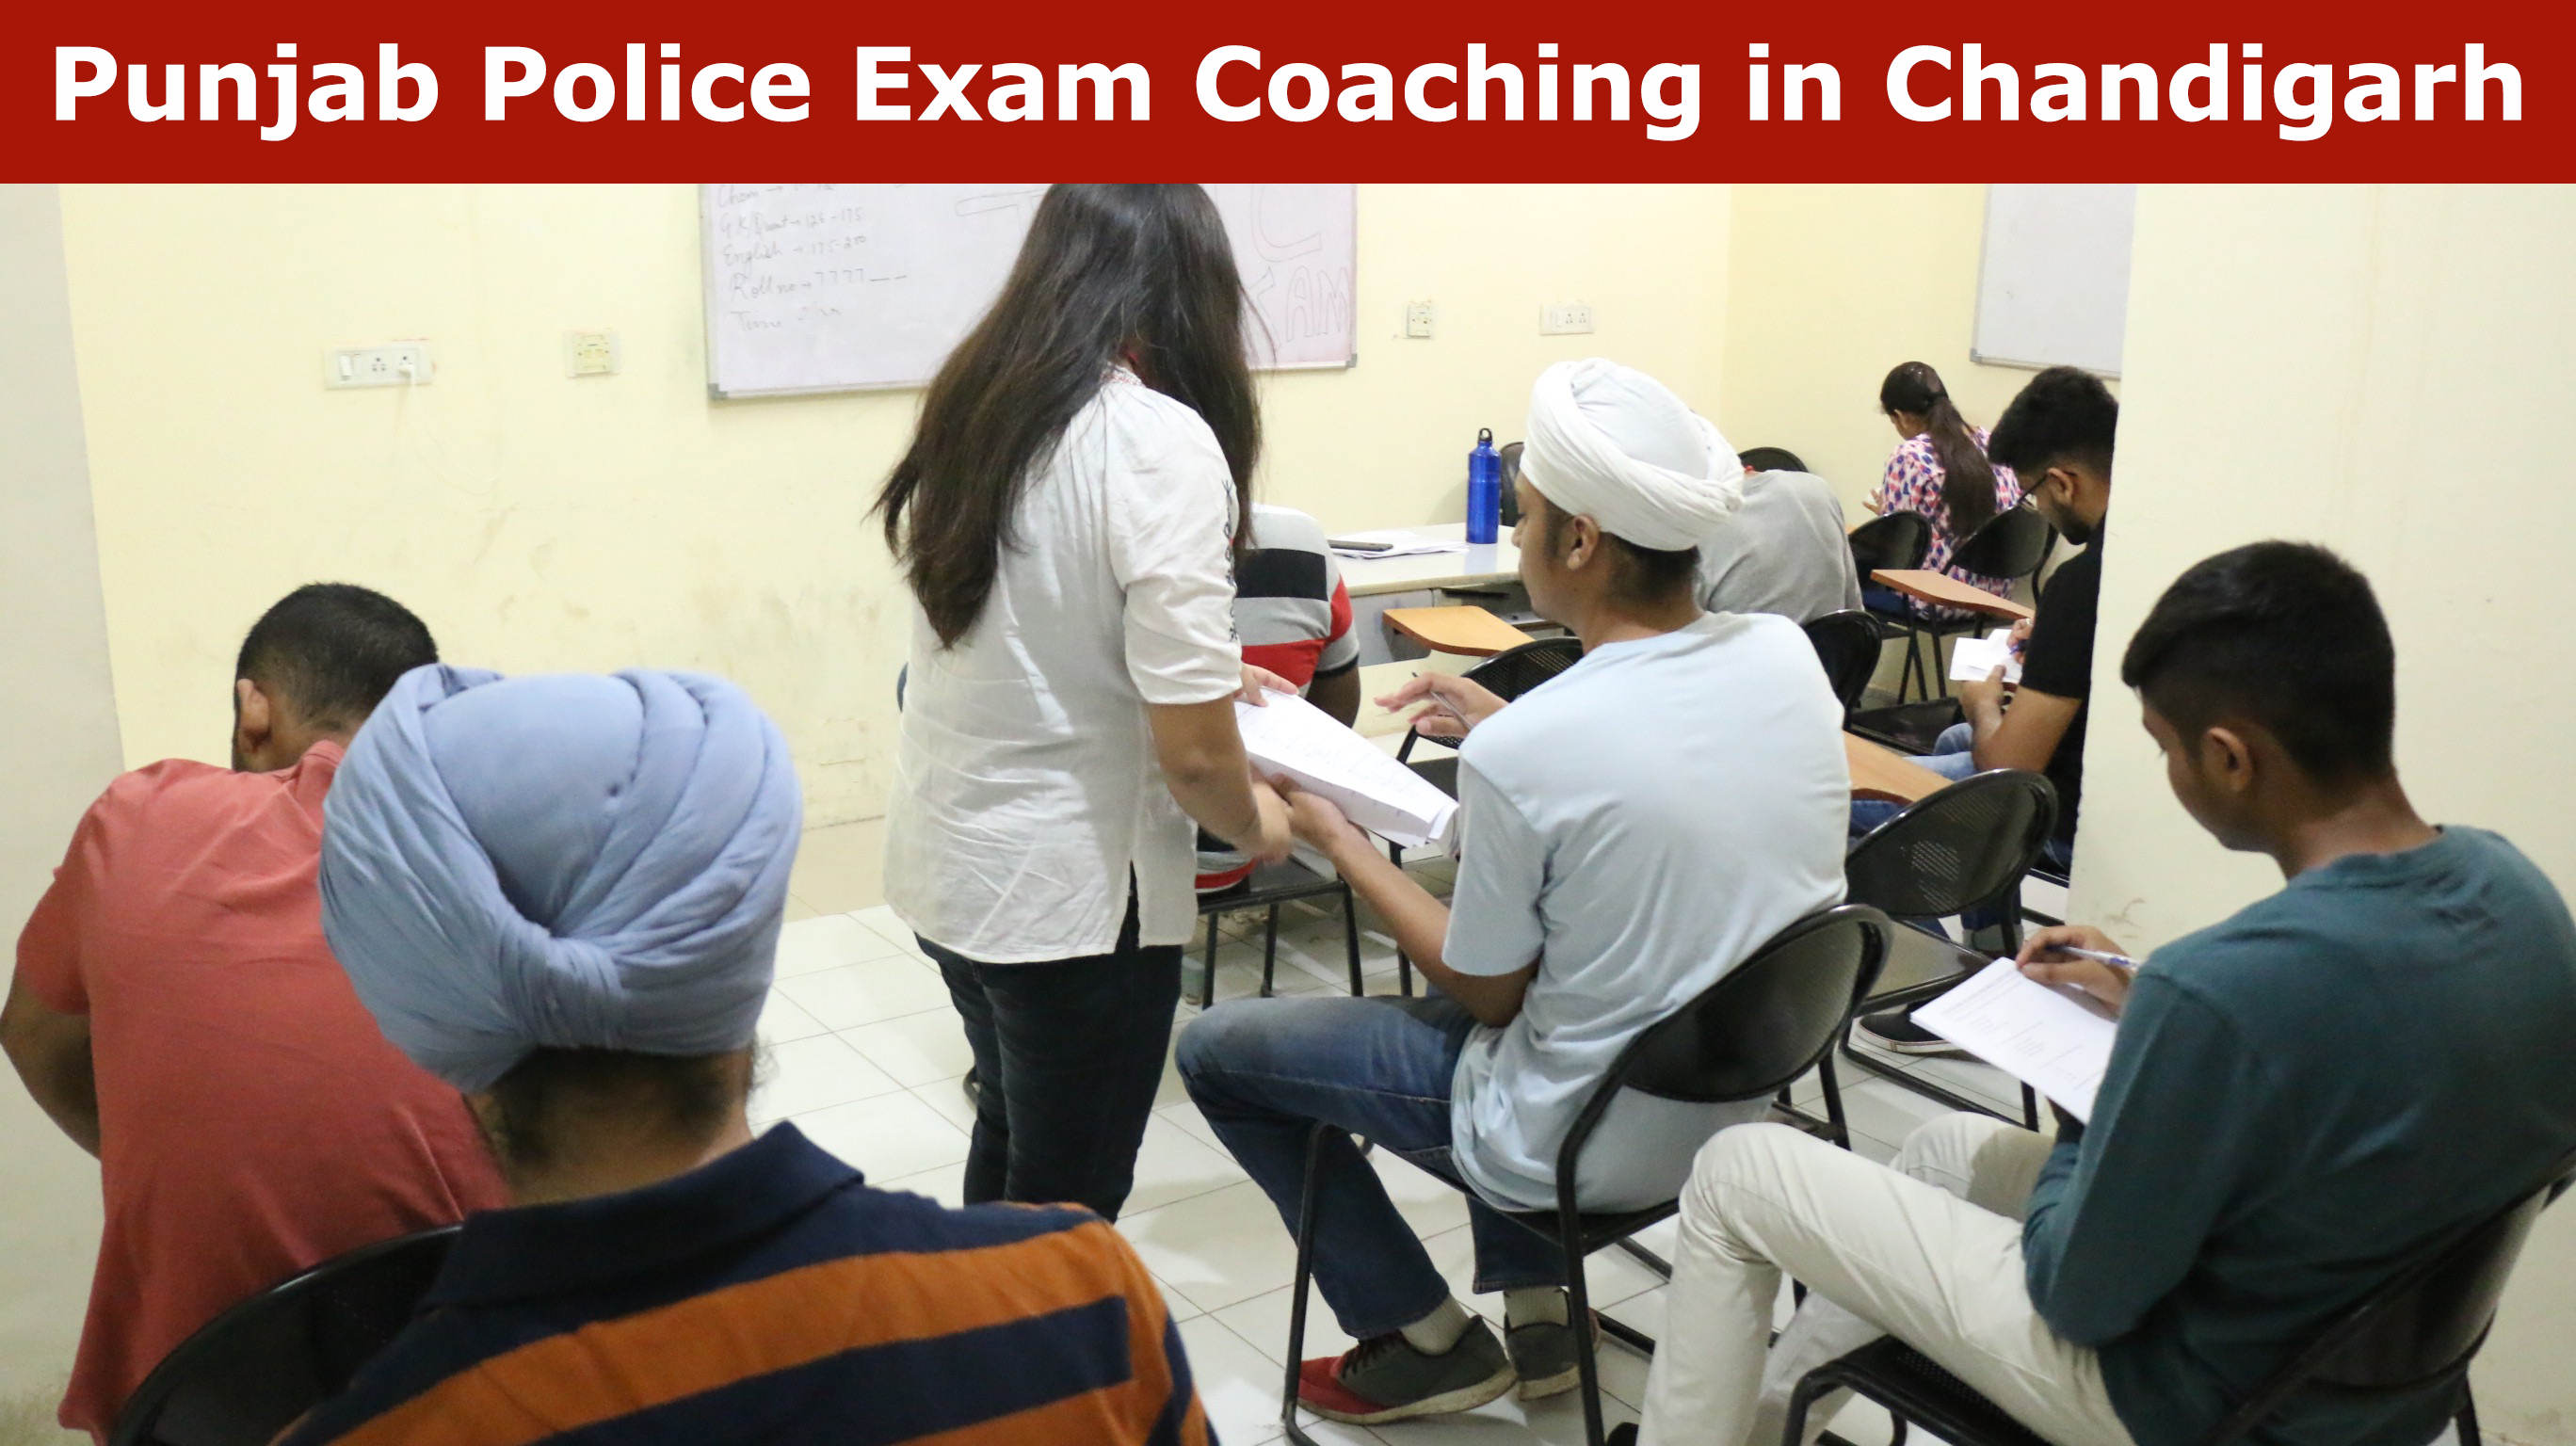 Punjab Police Exam Coaching in Chandigarh